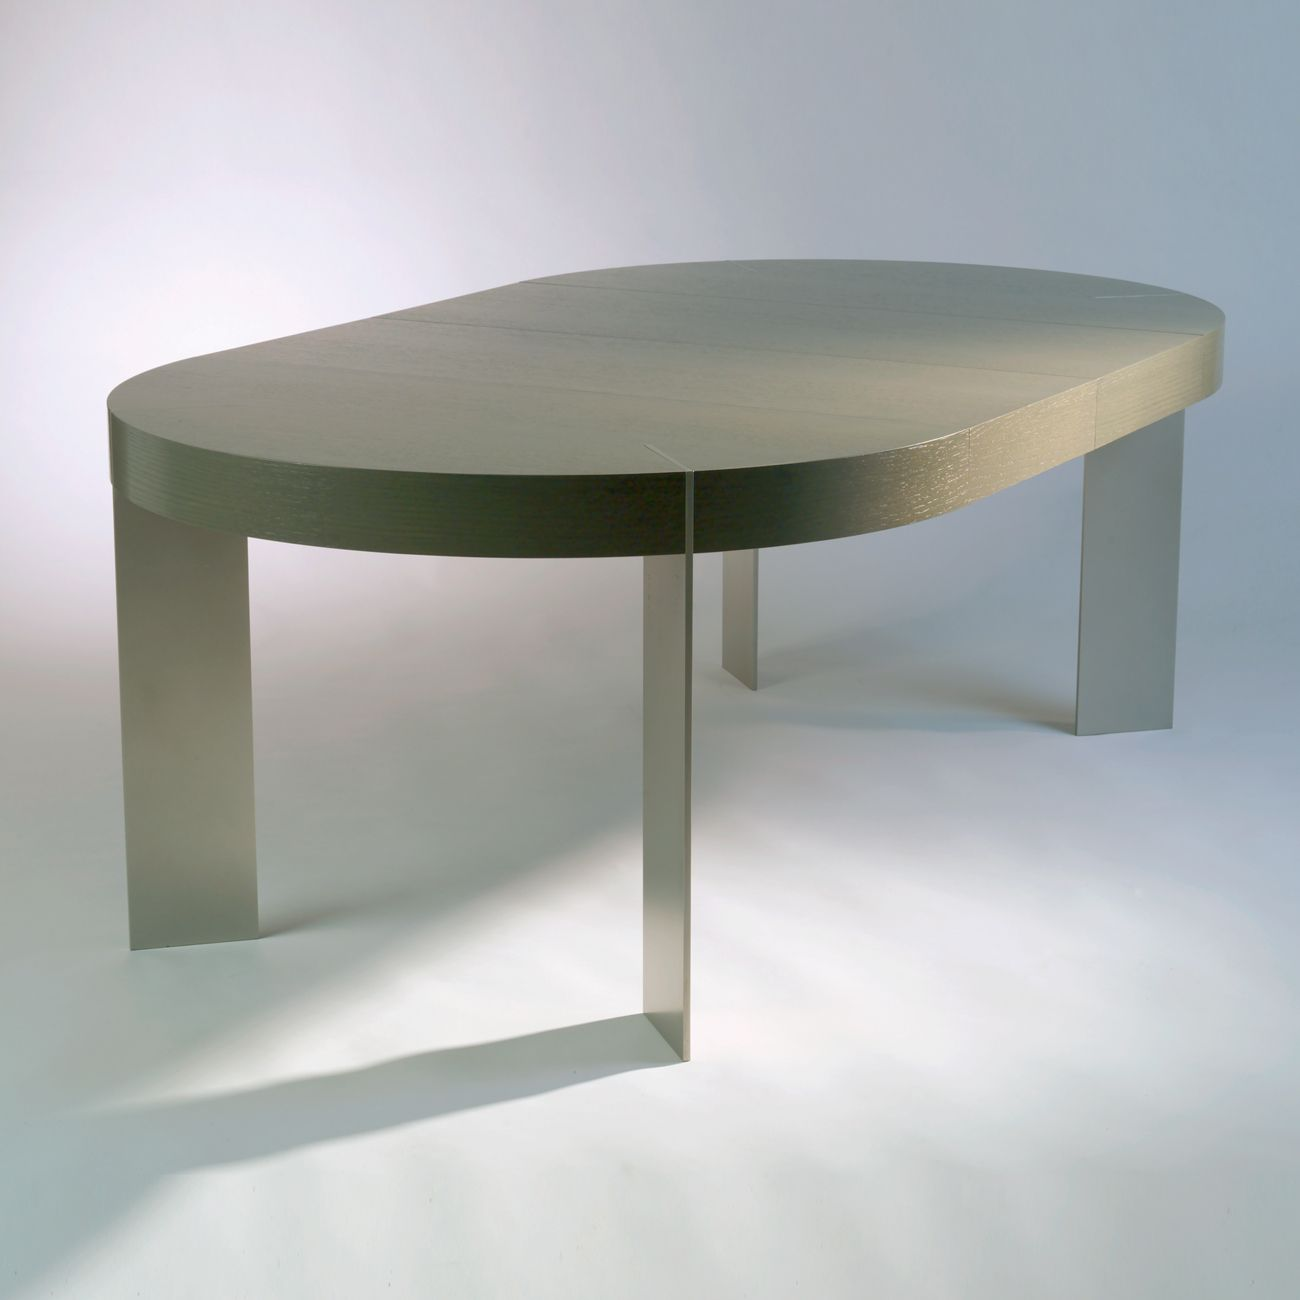 DTE DiningConference Table With Extensions And Leaves Dining - Conference table with leaves